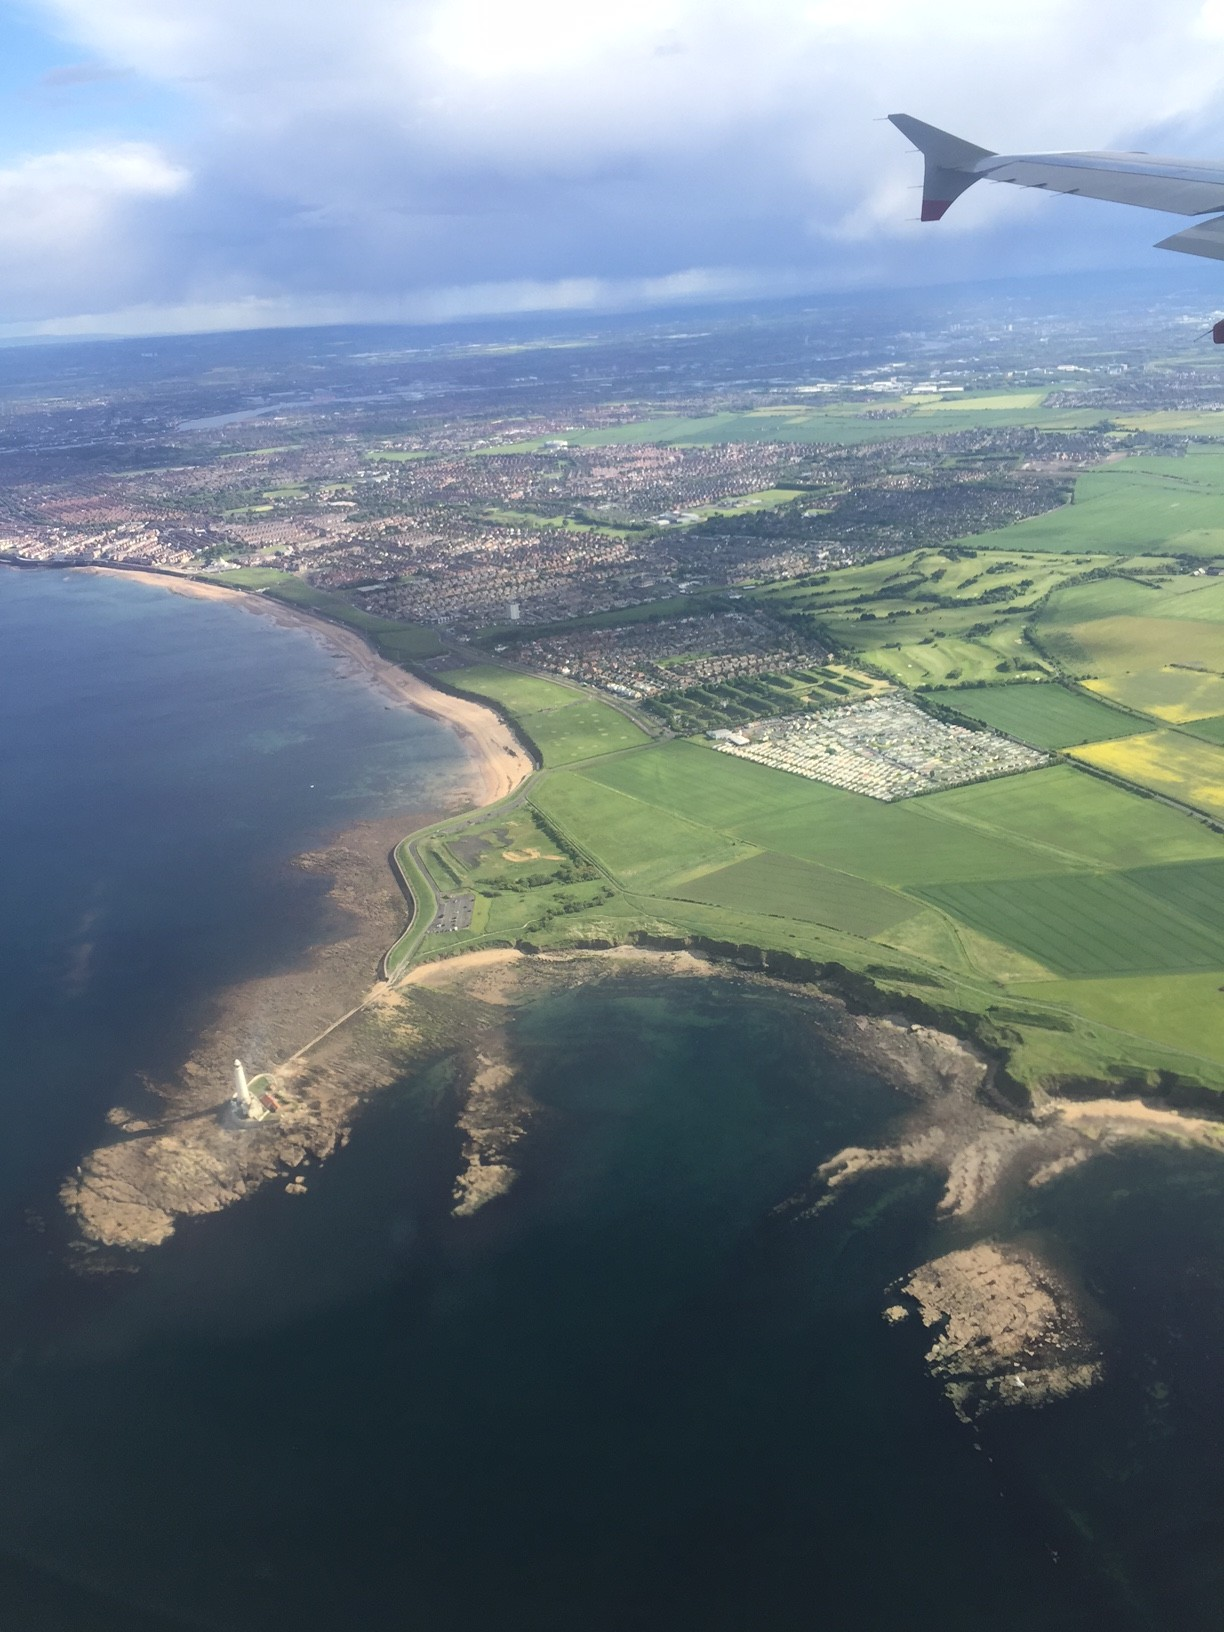 The List 39 - flying over St Mary's Lighthouse, Whitley Bay